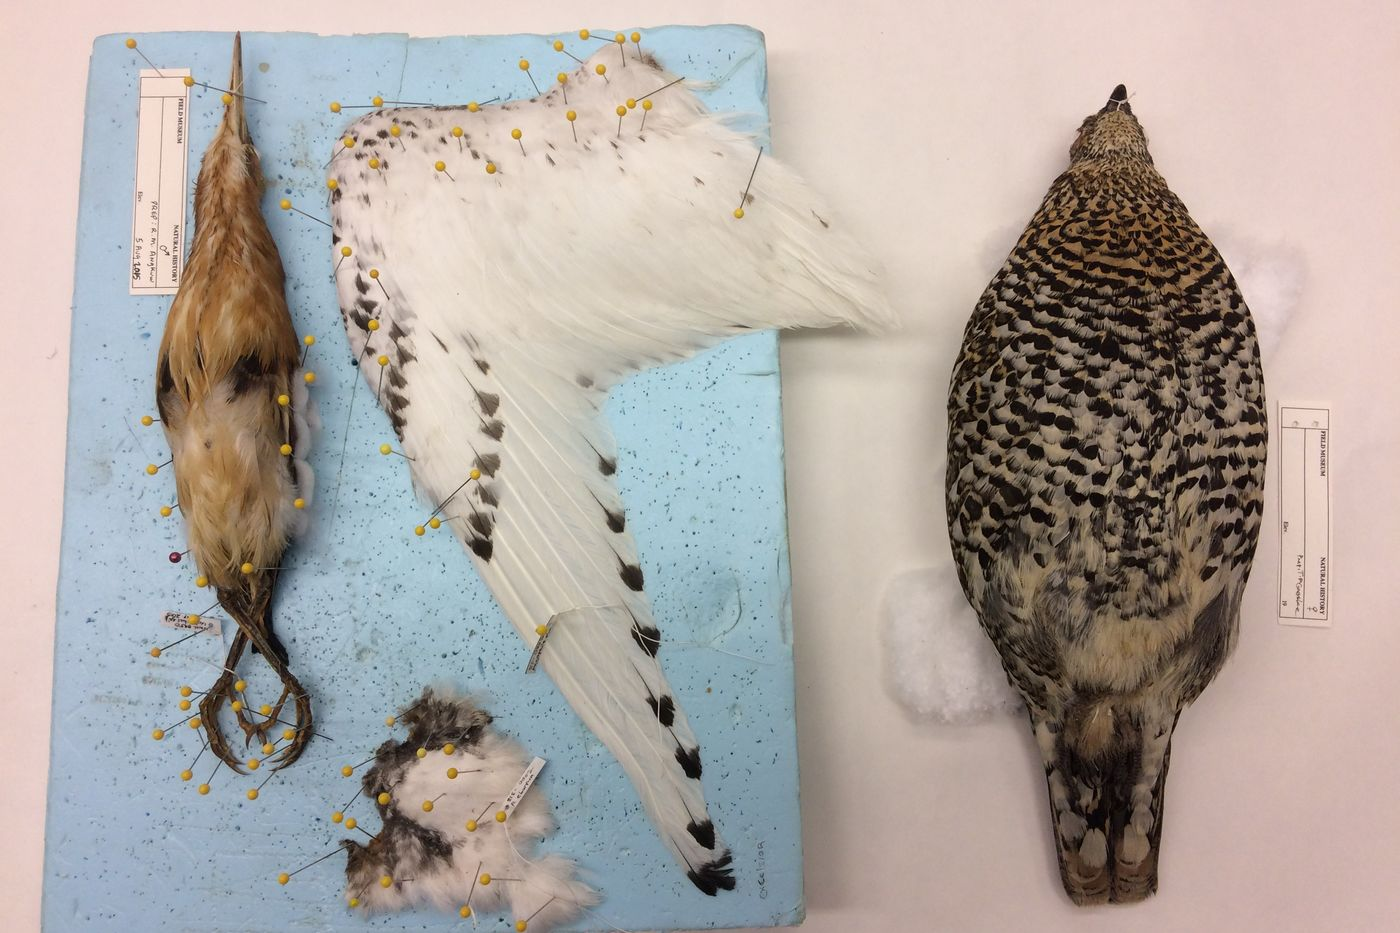 Brown and white bird specimens pinned on a board